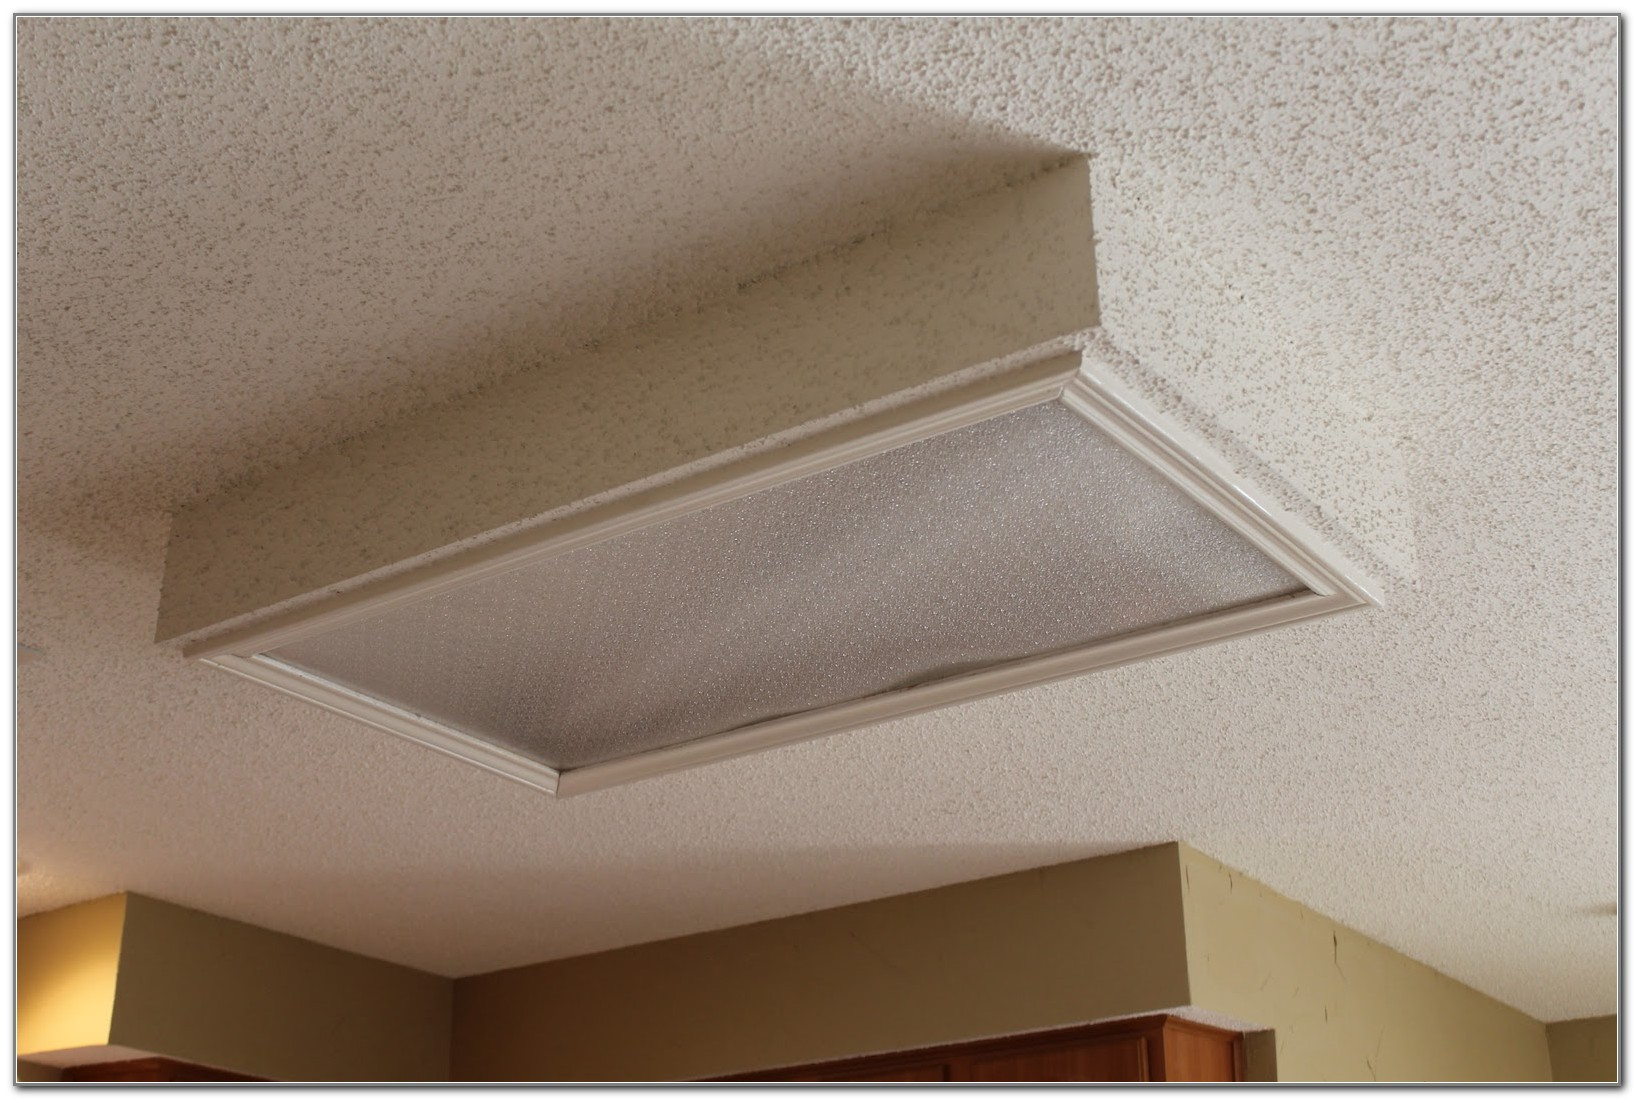 Removing Fluorescent Light In Kitchen